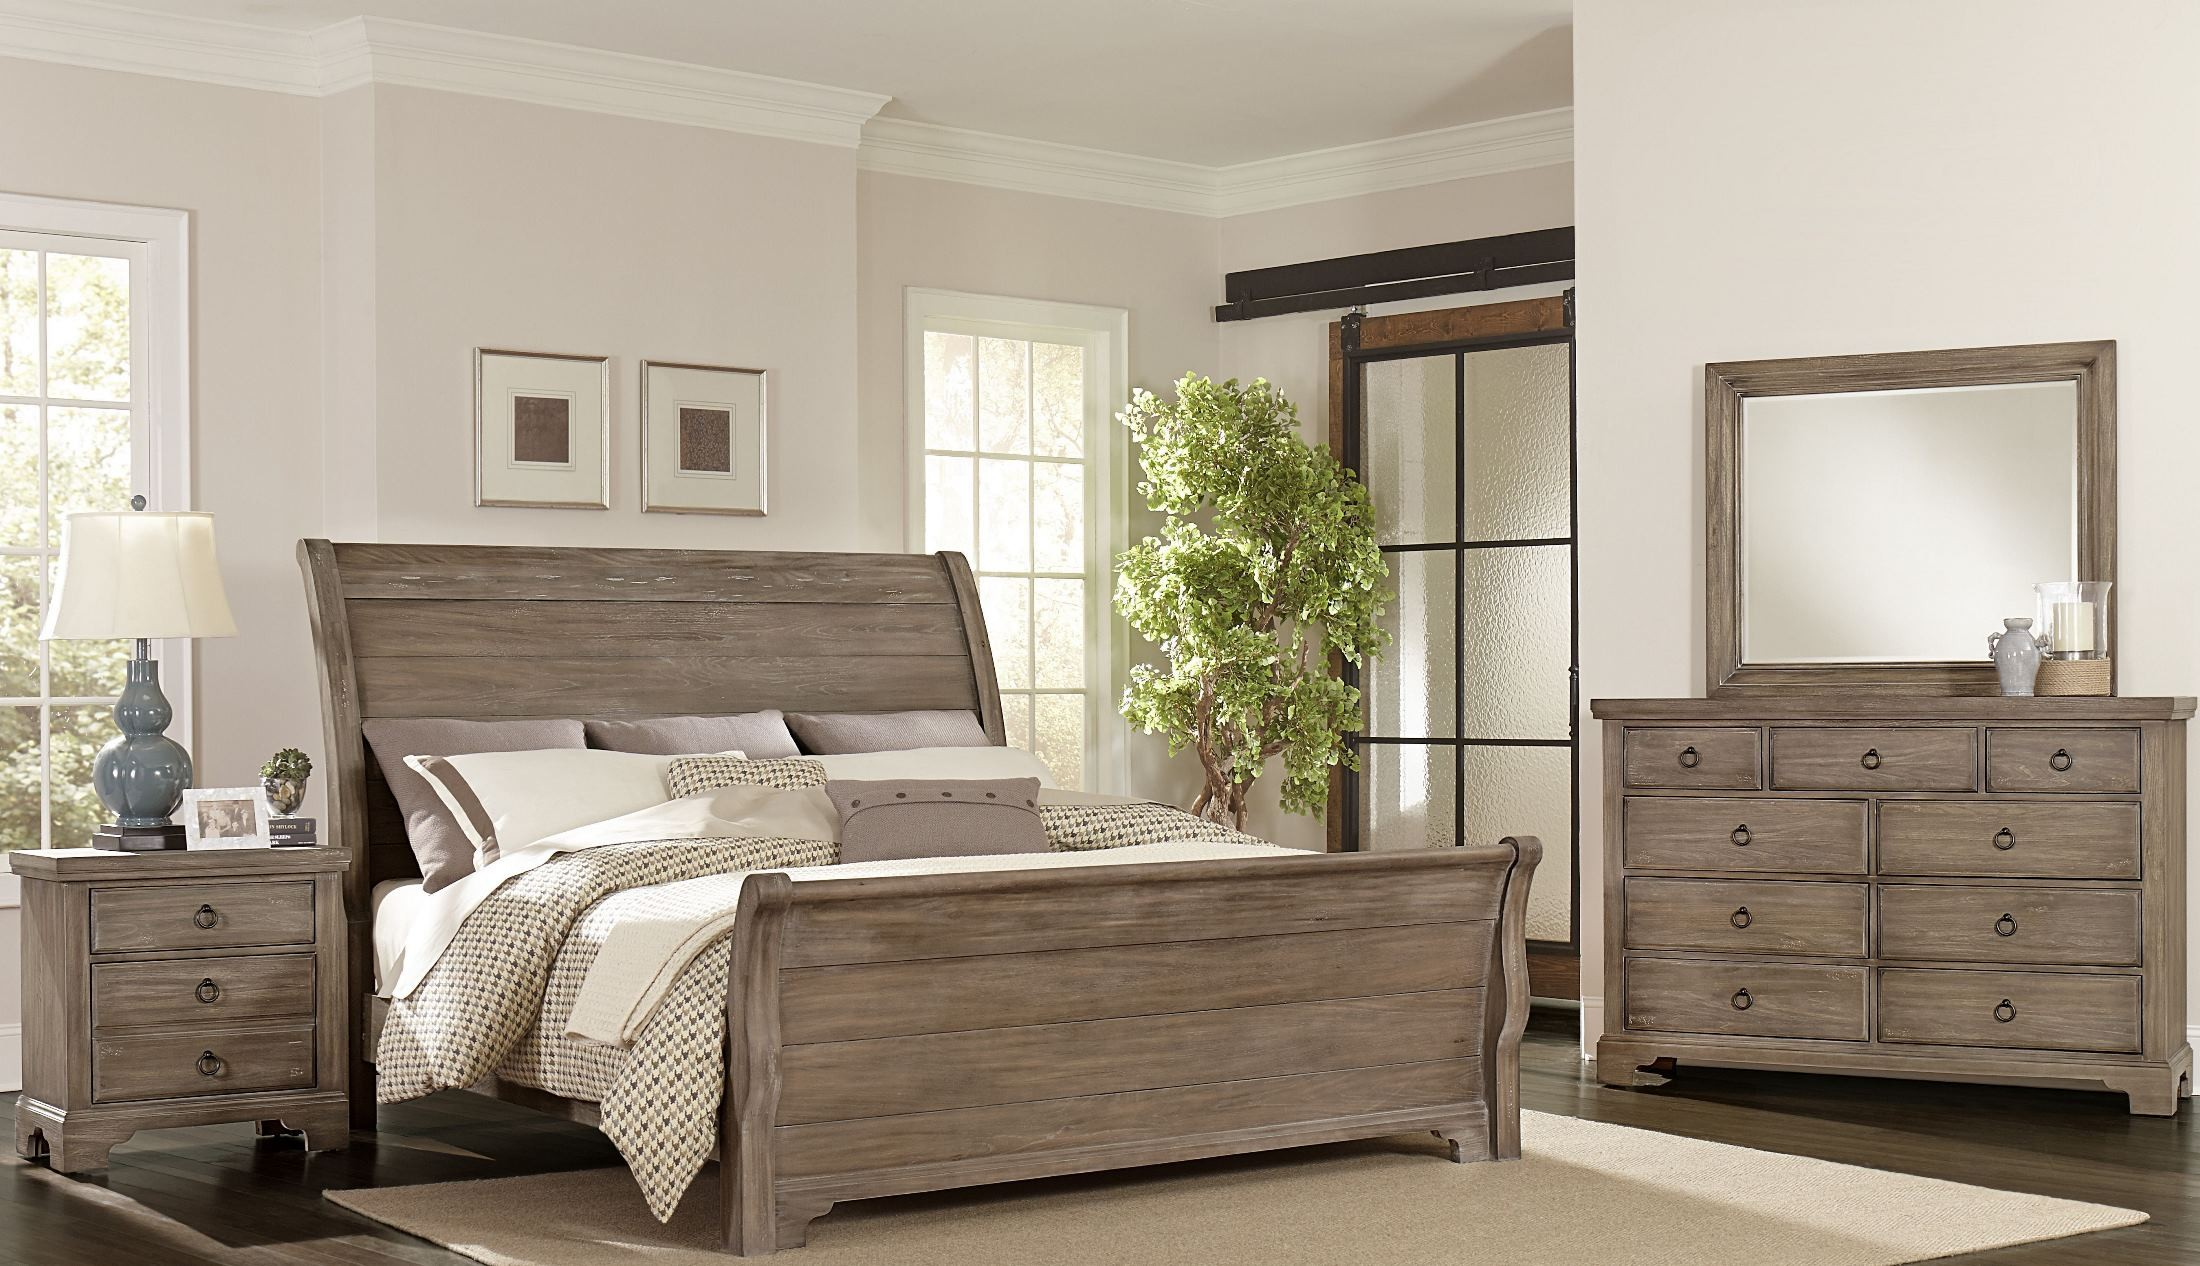 Vaughan Bassett Bedroom Furniture Vaughan Bassett